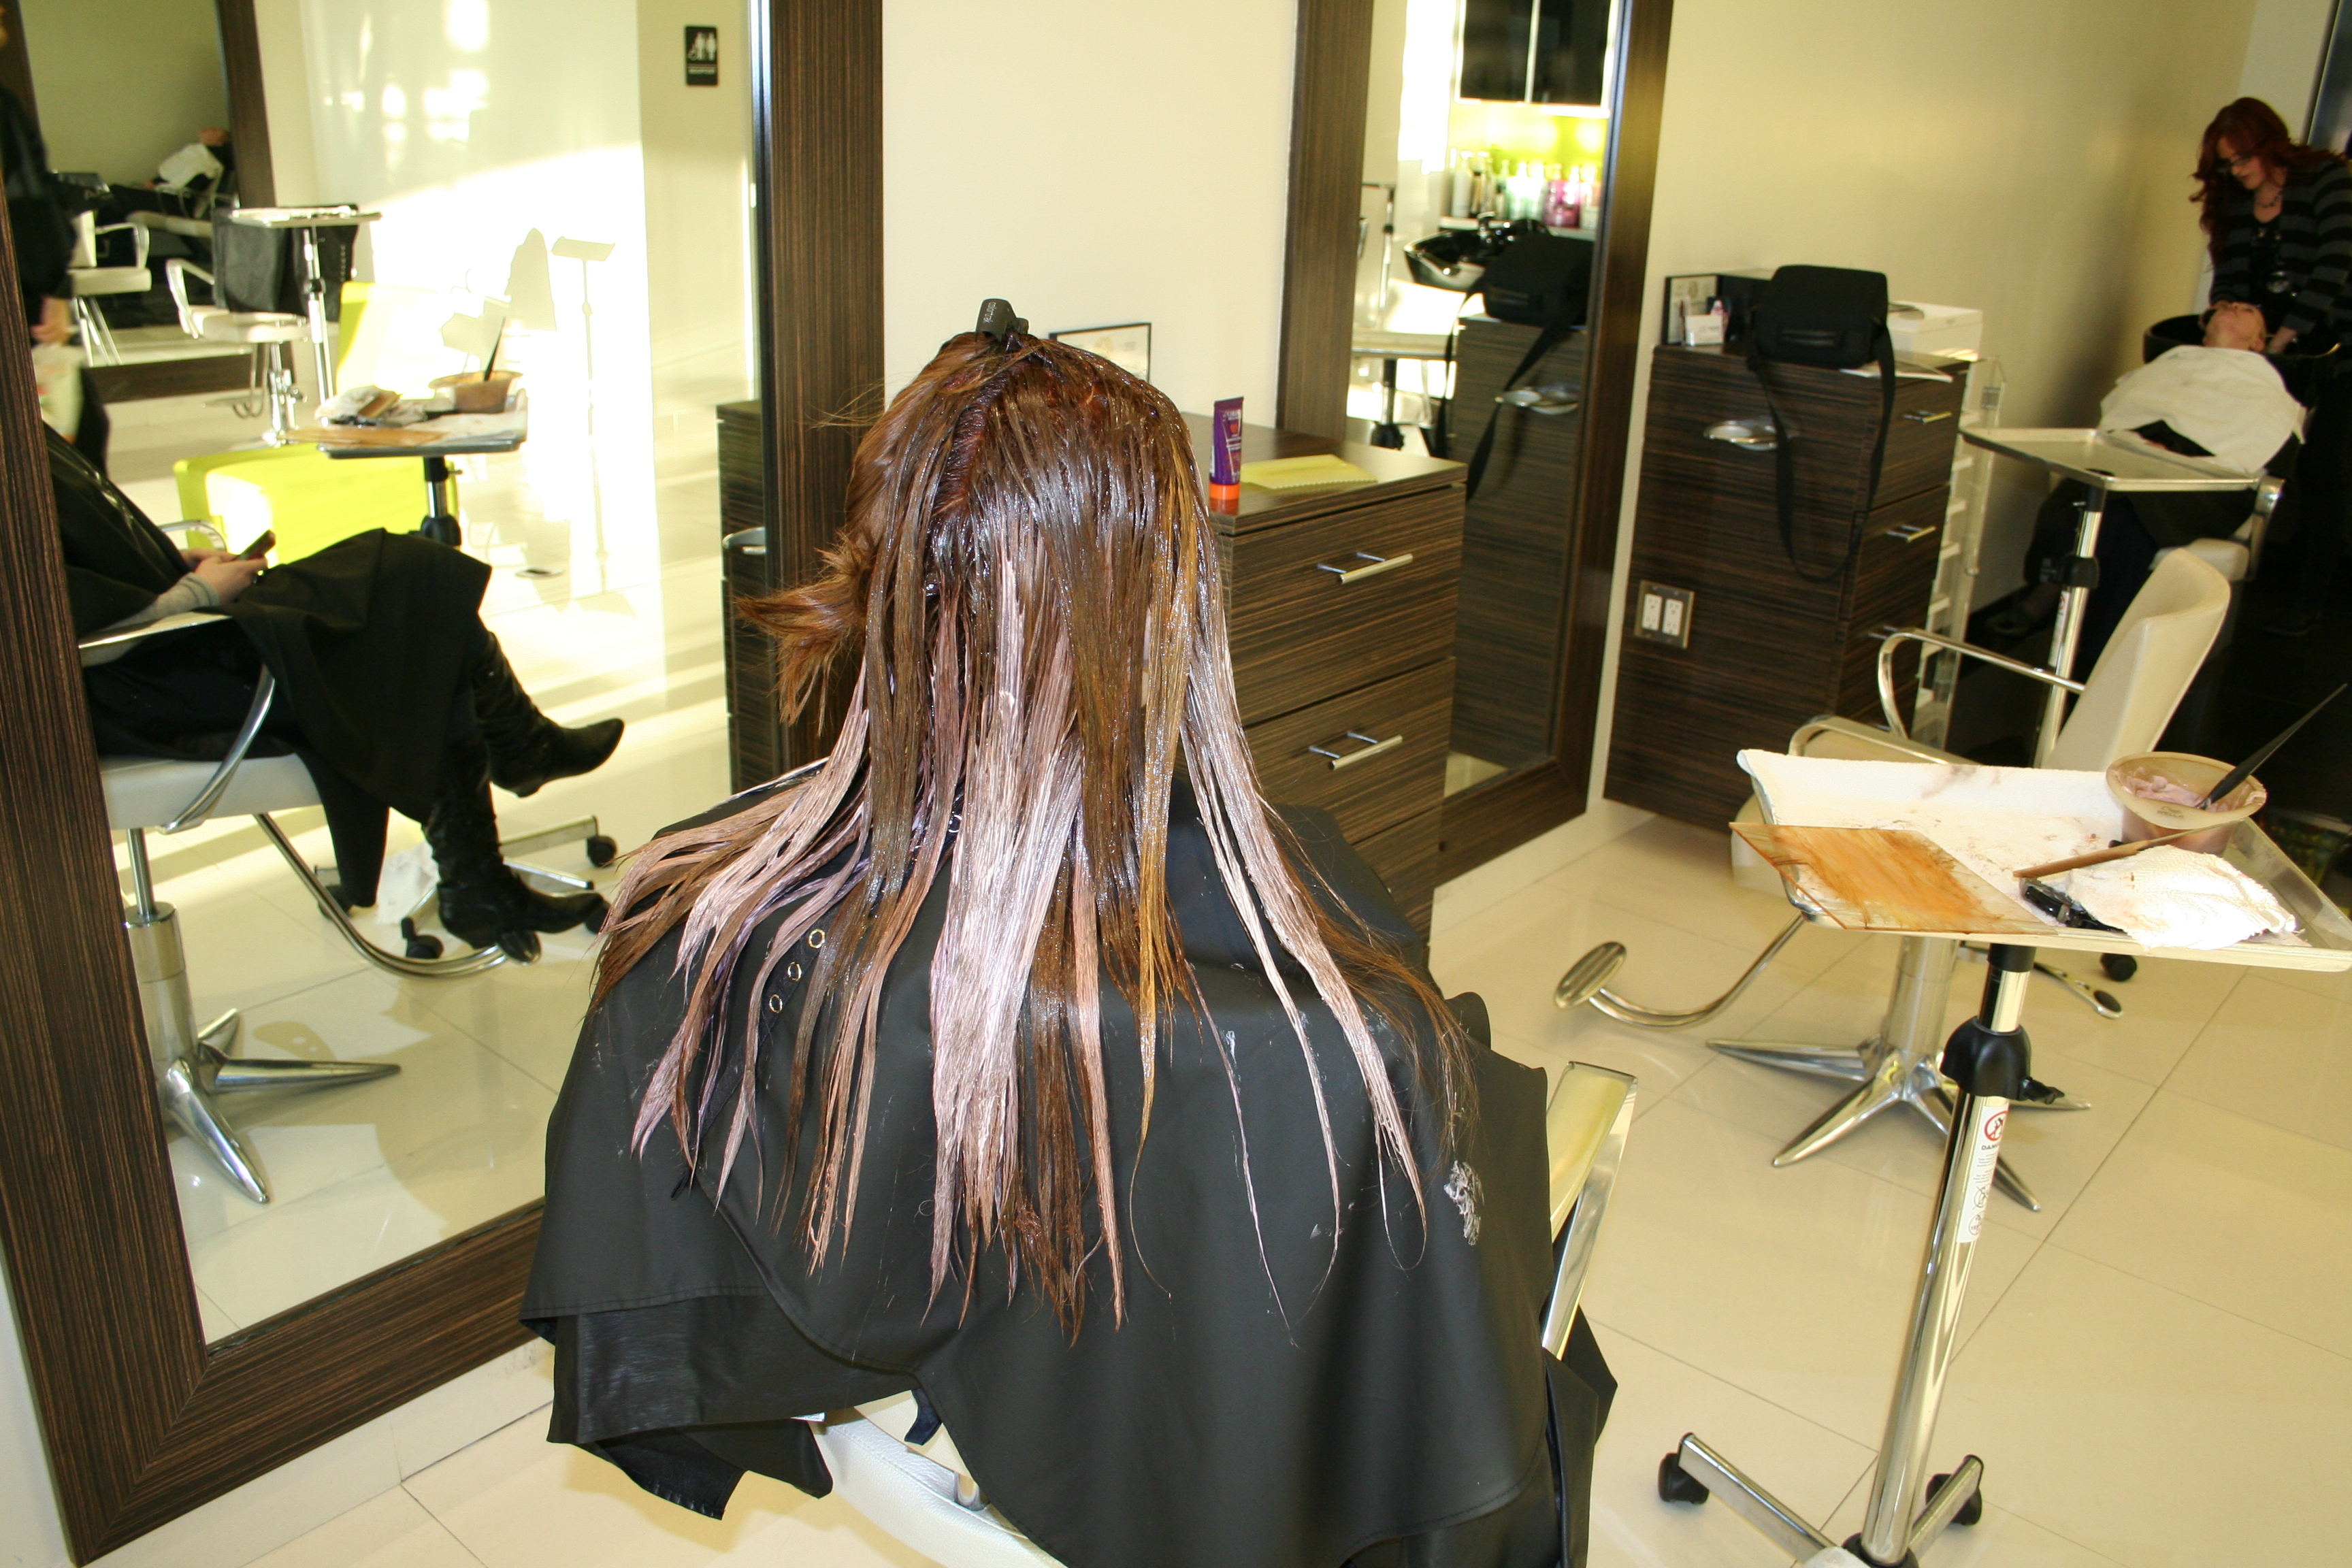 Art of hair color aalam the salon for Aalam the salon reviews